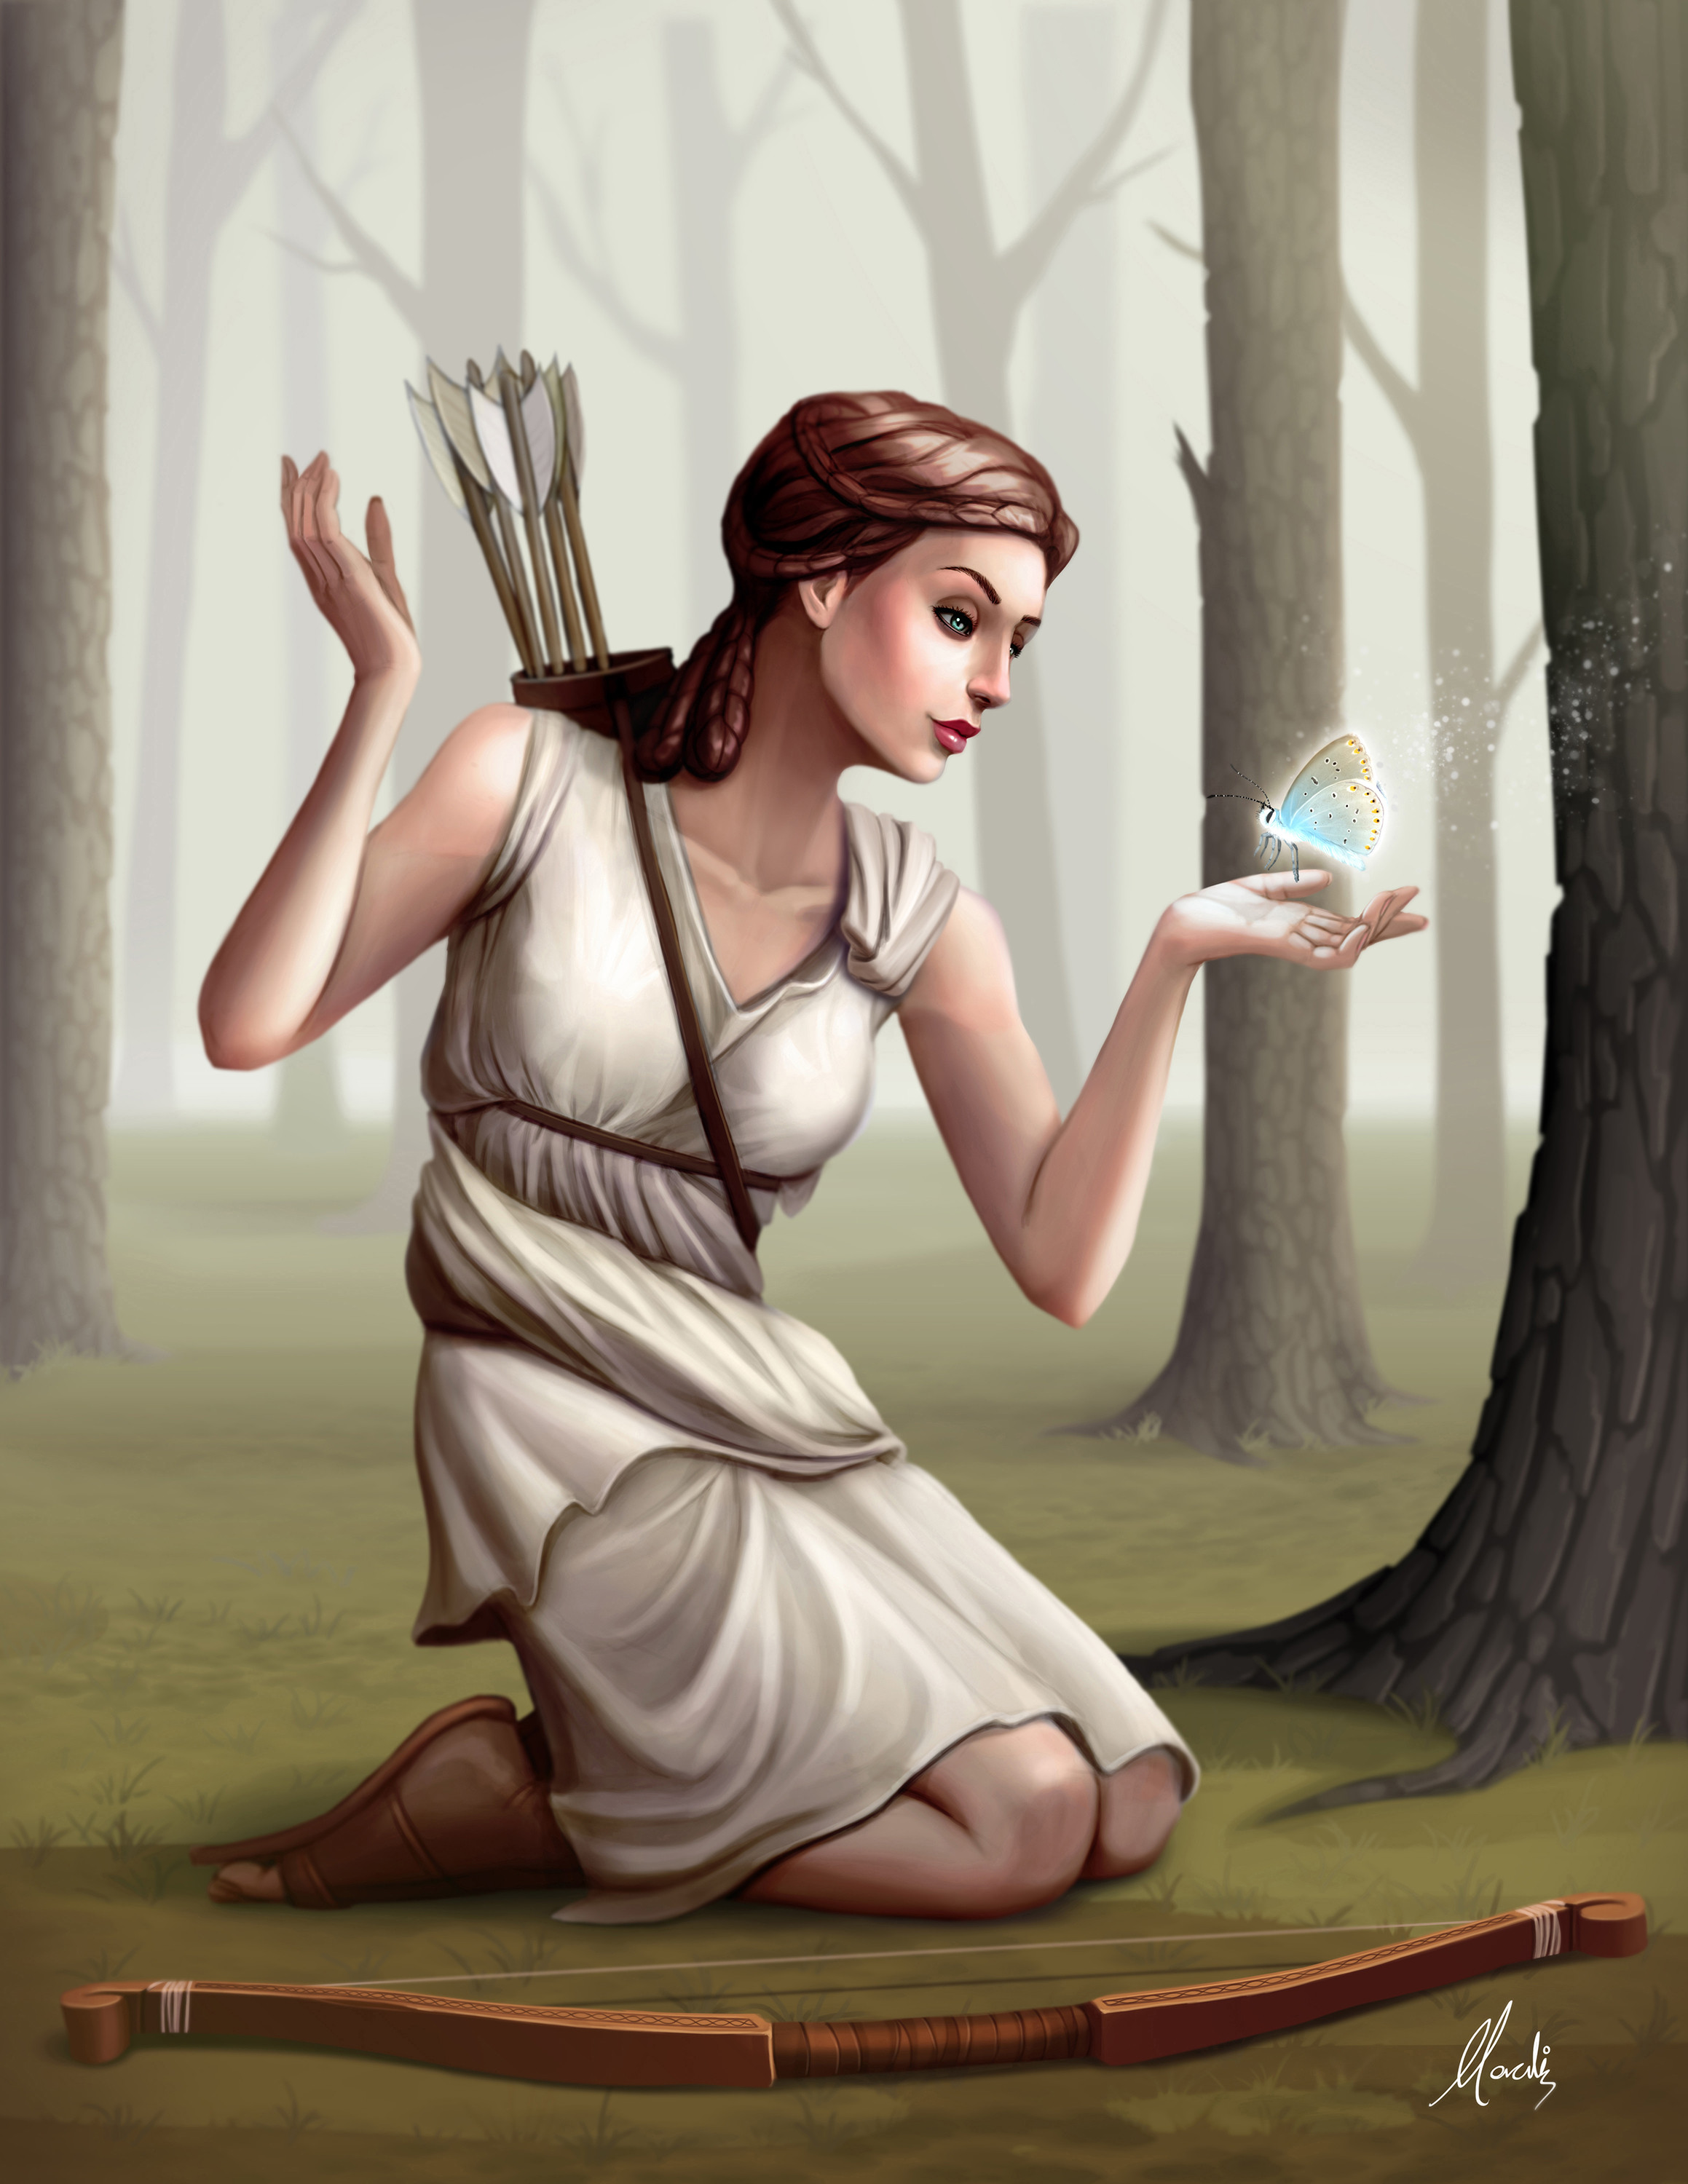 This is the final illustration of Artemis